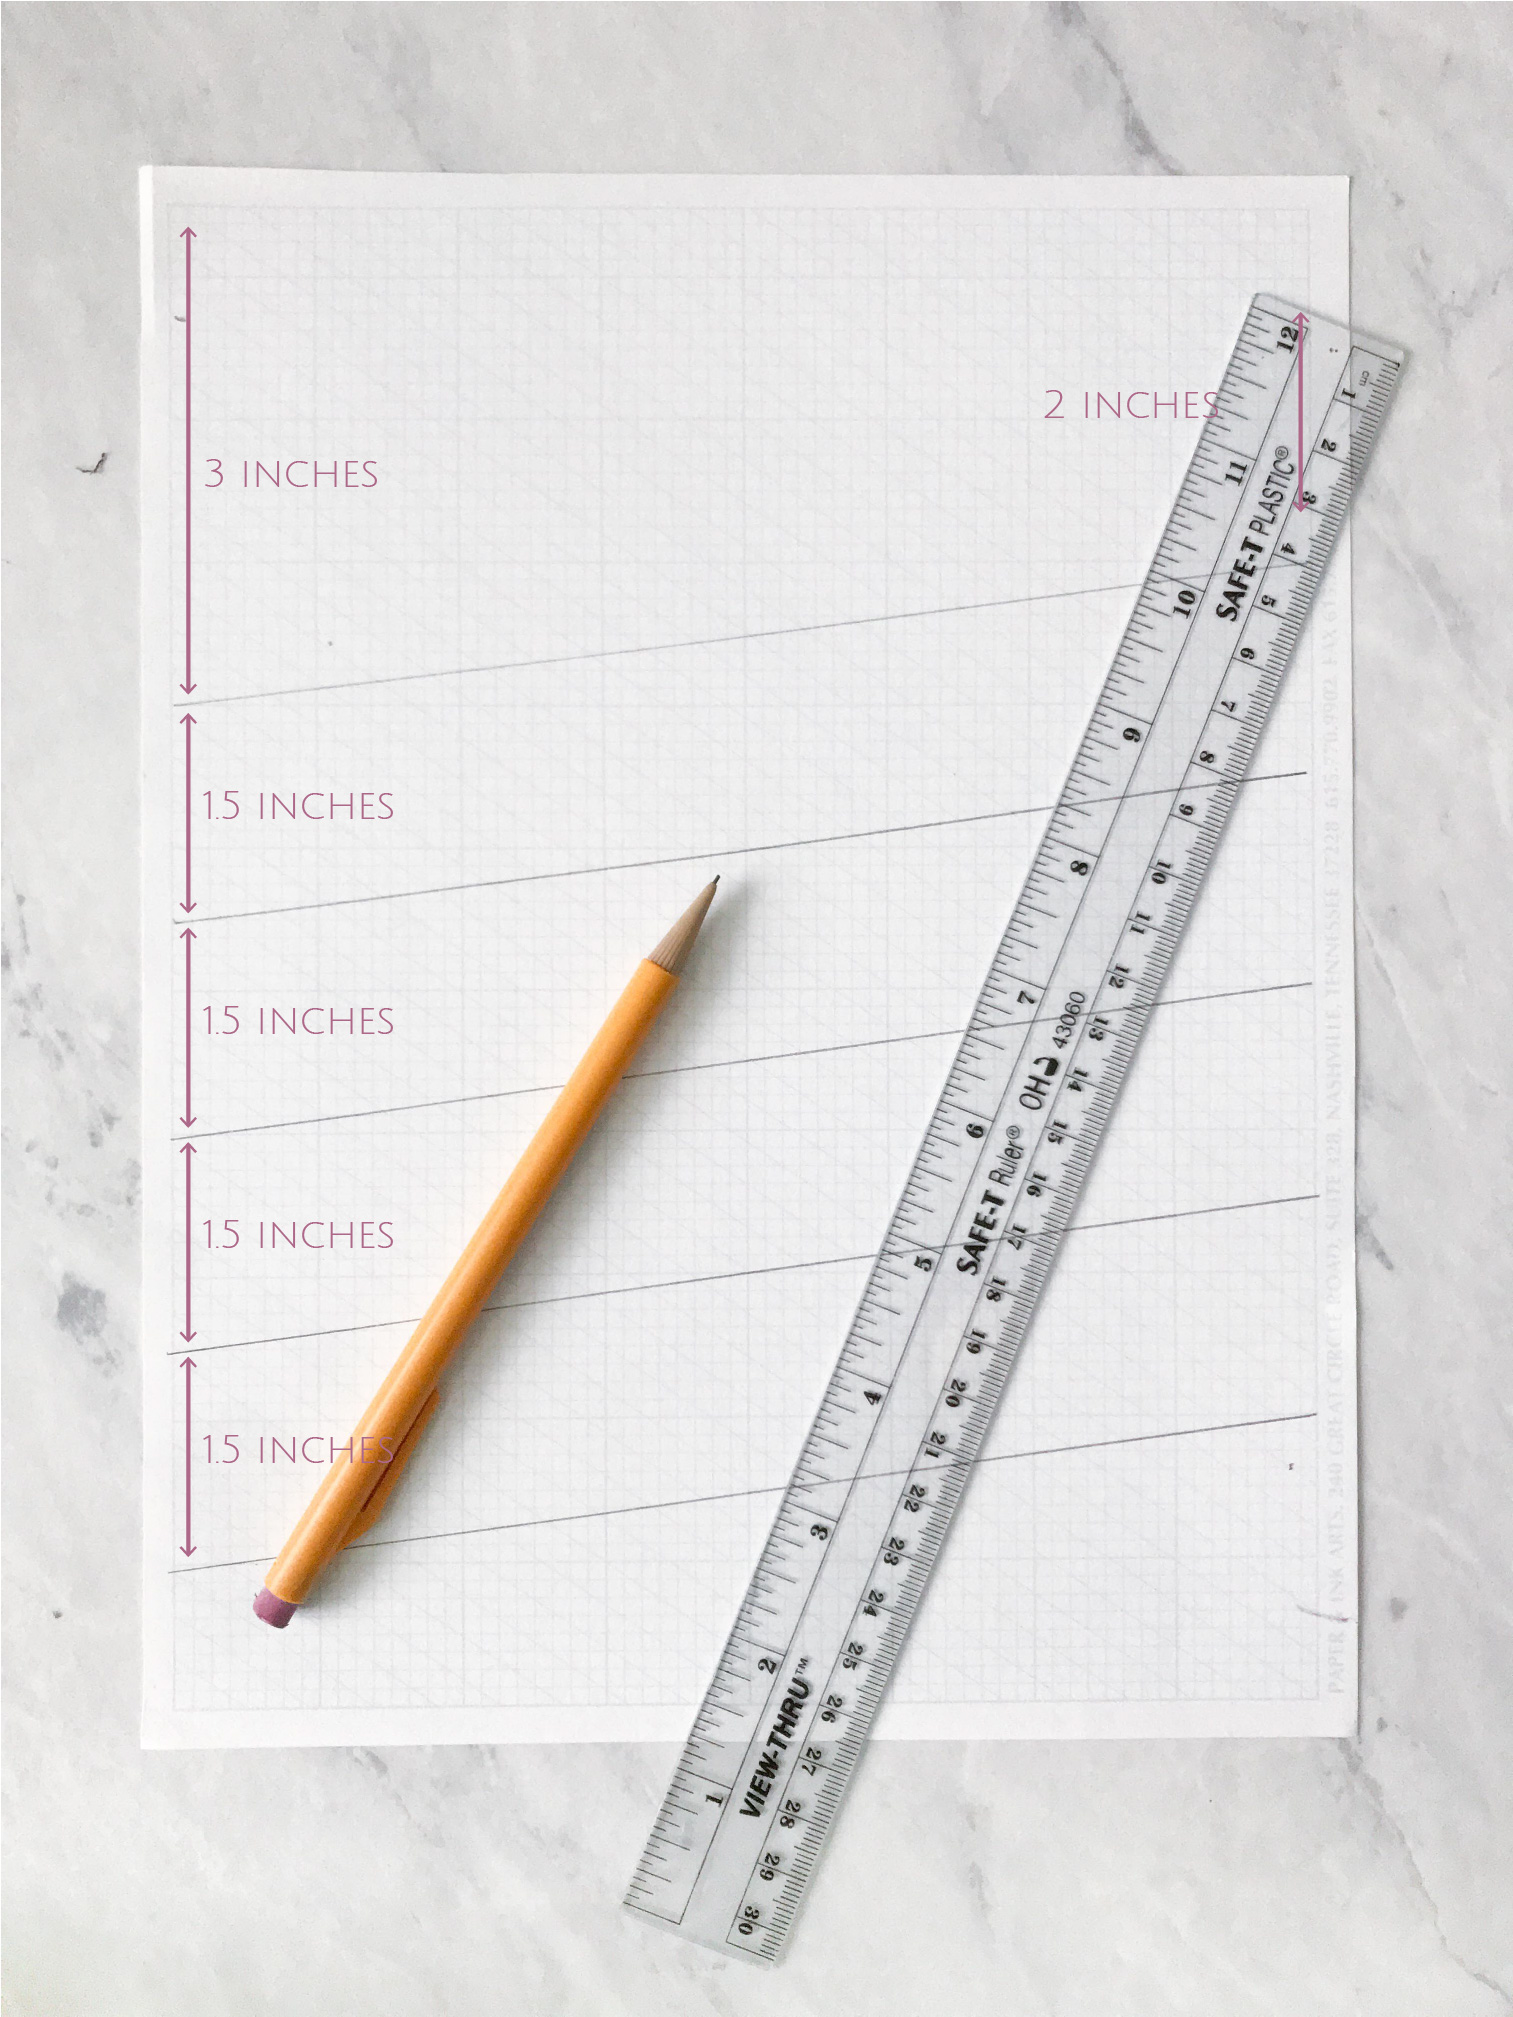 """STEP 1:making a diagonal template - You can make all kinds of layouts, this one is for writing five lines on a diagonal. On the left margin of your grid paper, measure 3"""" from the top, make a little notch mark. On the right margin of your grid paper, put a notch at 2"""" from the top. Use your ruler to create a straight line between the two notches. You have your first diagonal line!For the next four lines, measure 1.5 inches below the previous notch on both the right and left side of the page."""